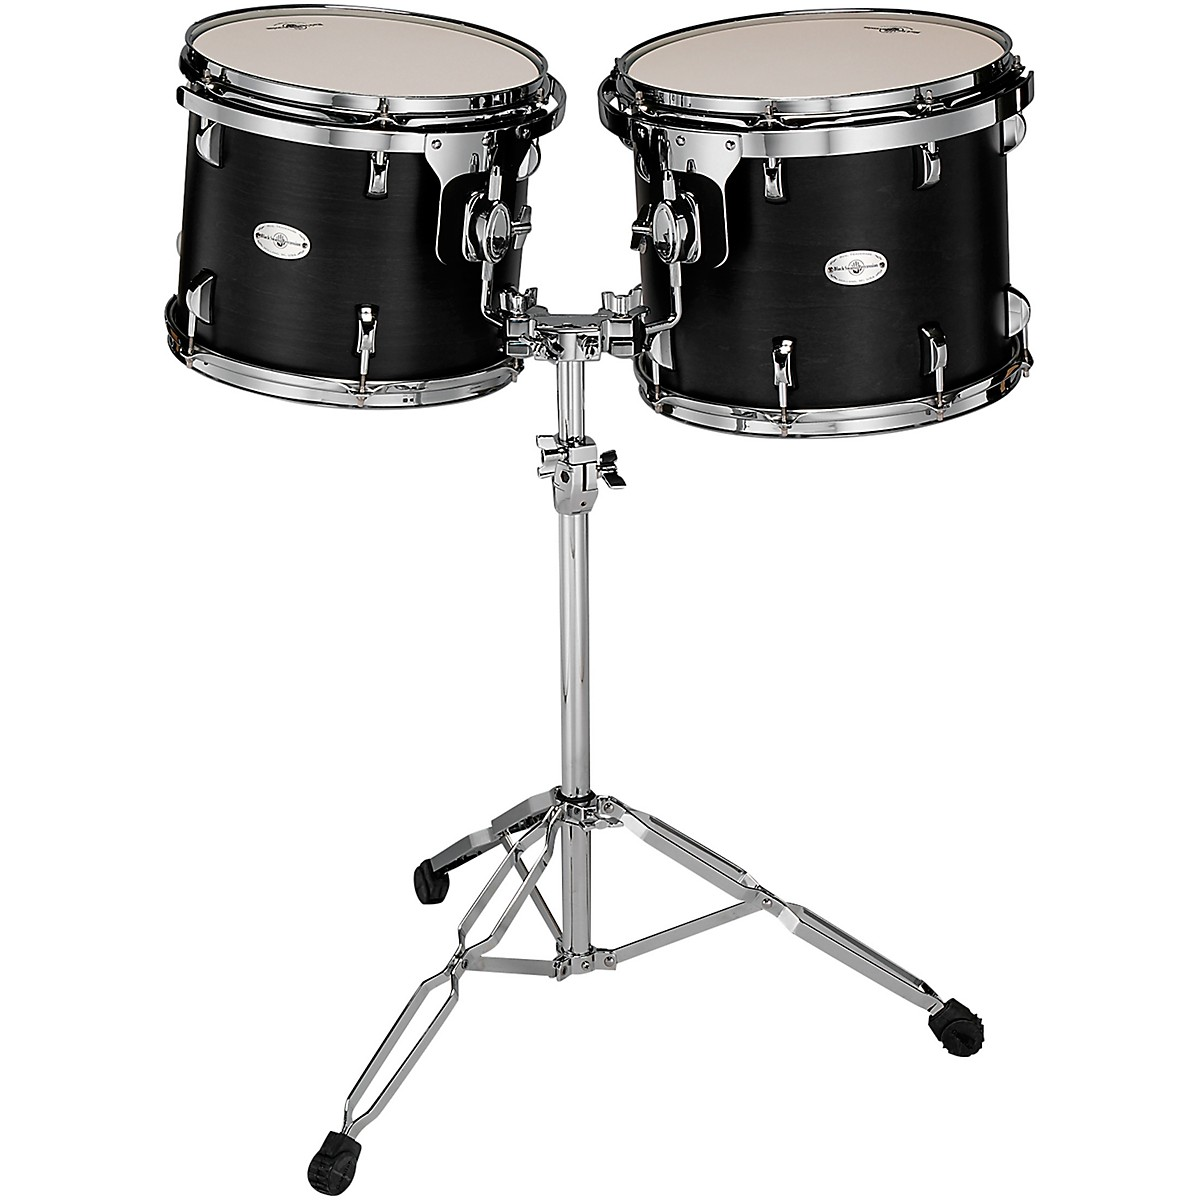 Black Swamp Percussion Concert Black Concert Tom Set with Stand